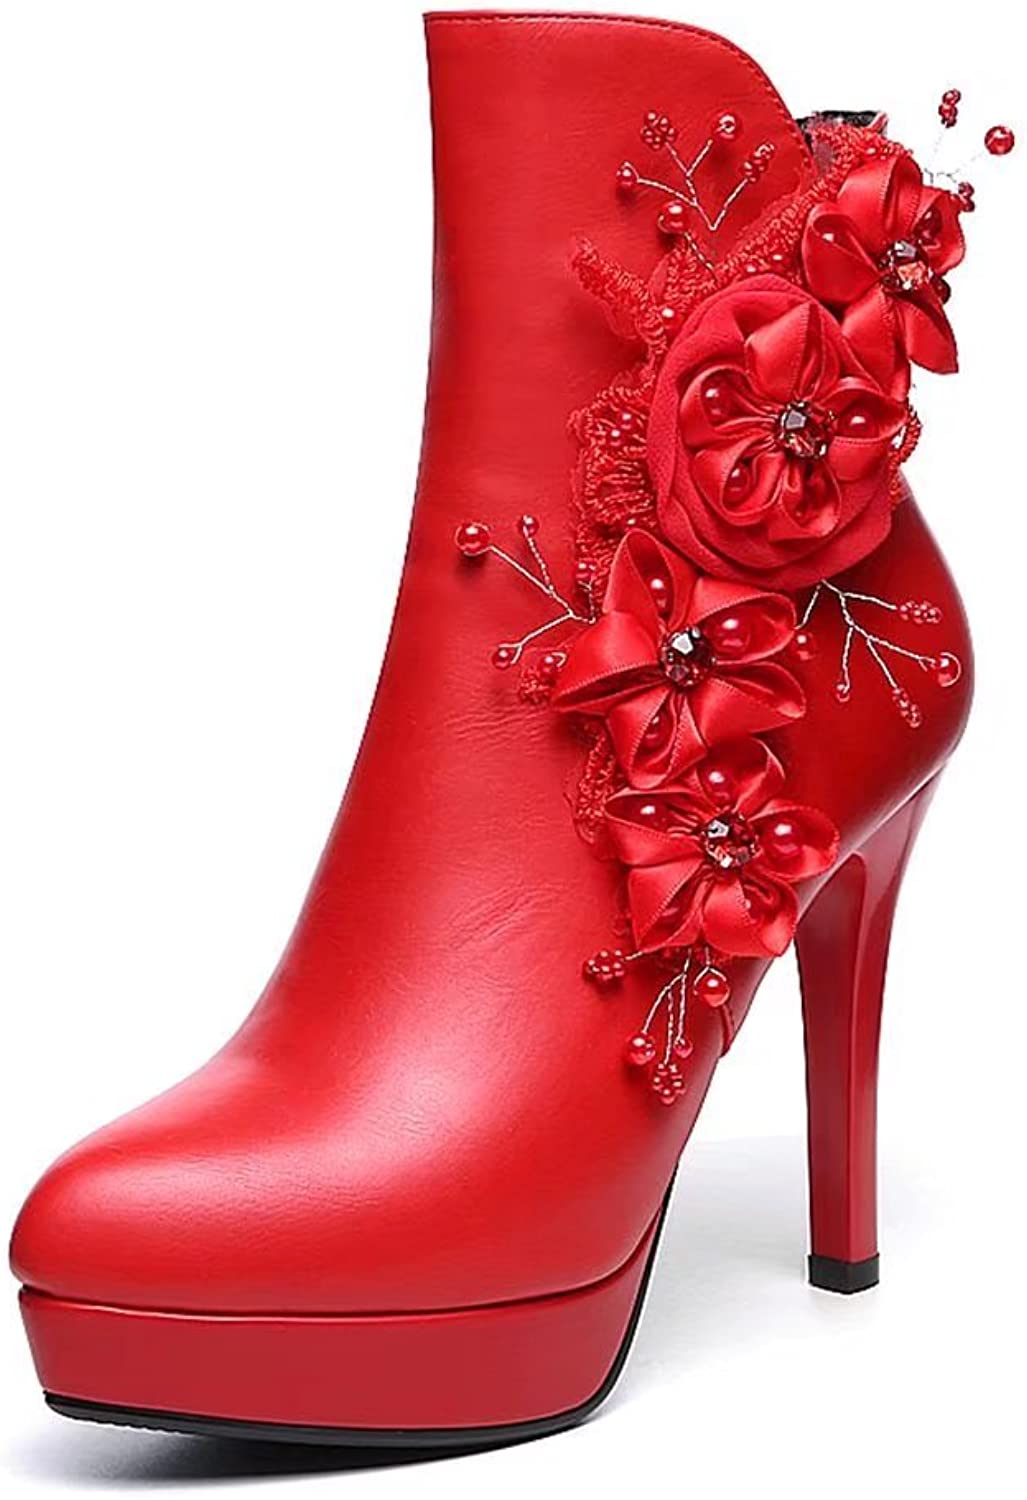 VIMISAOI Women's Platform High Heel Boots Pointed Toe Red Wedding Party Zipper Appliques Ankle Boots